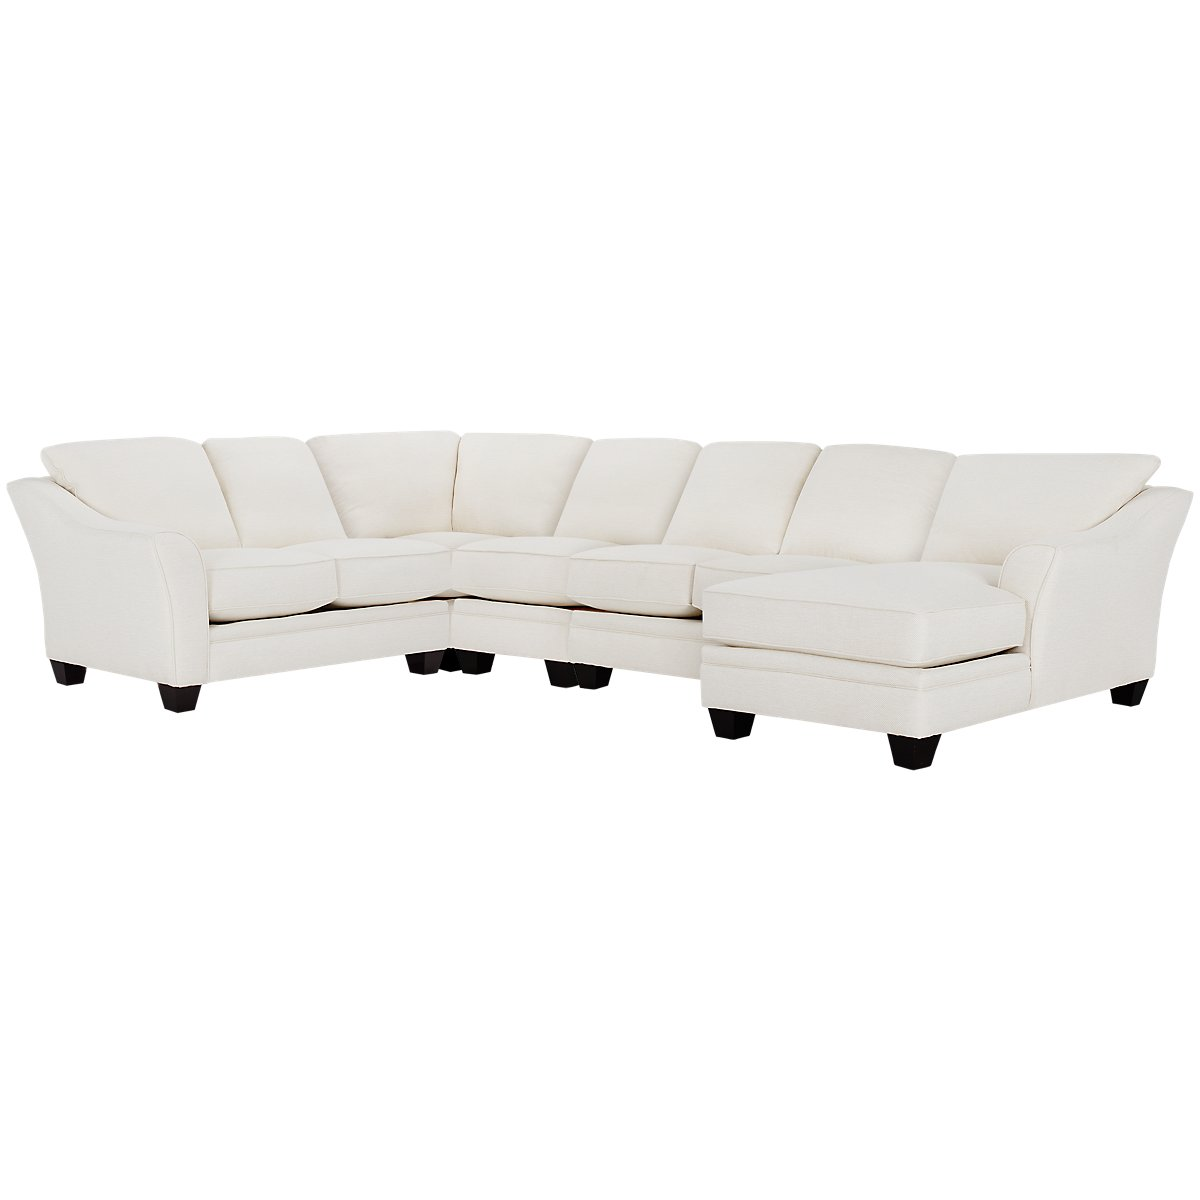 Avery White Fabric Large Right Chaise Sectional